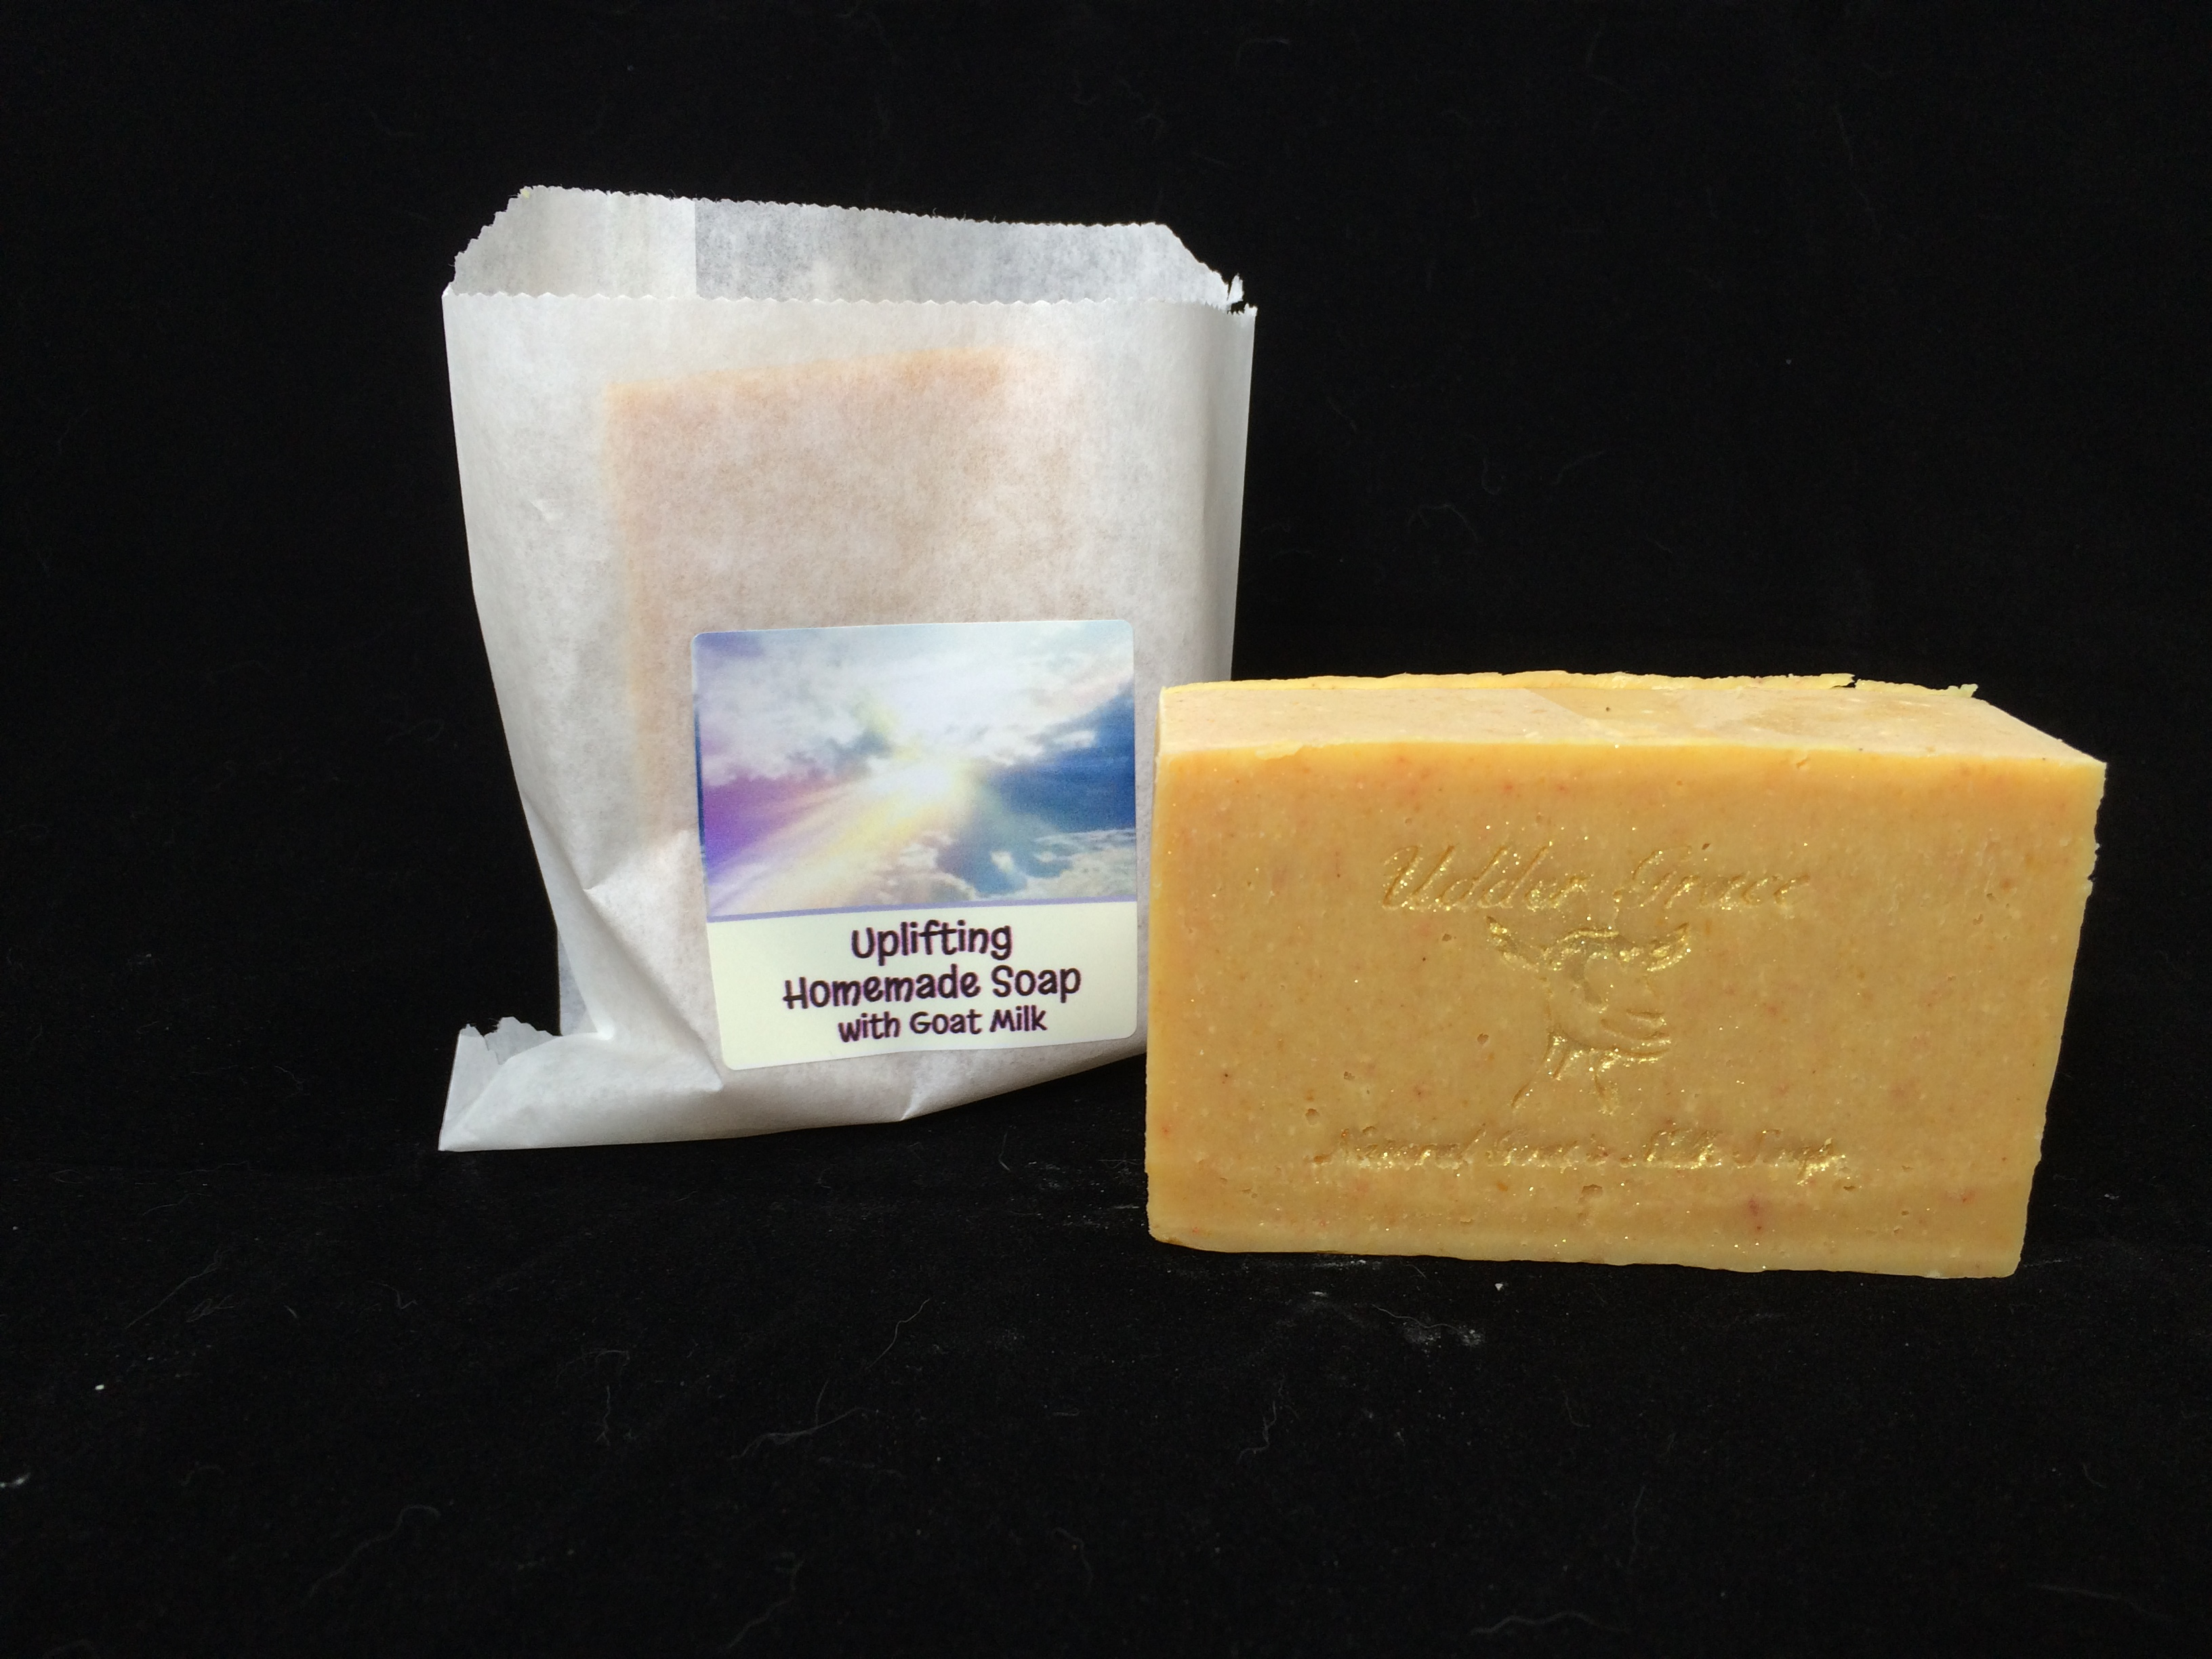 Handmade soap with goat milk- uplifting scent